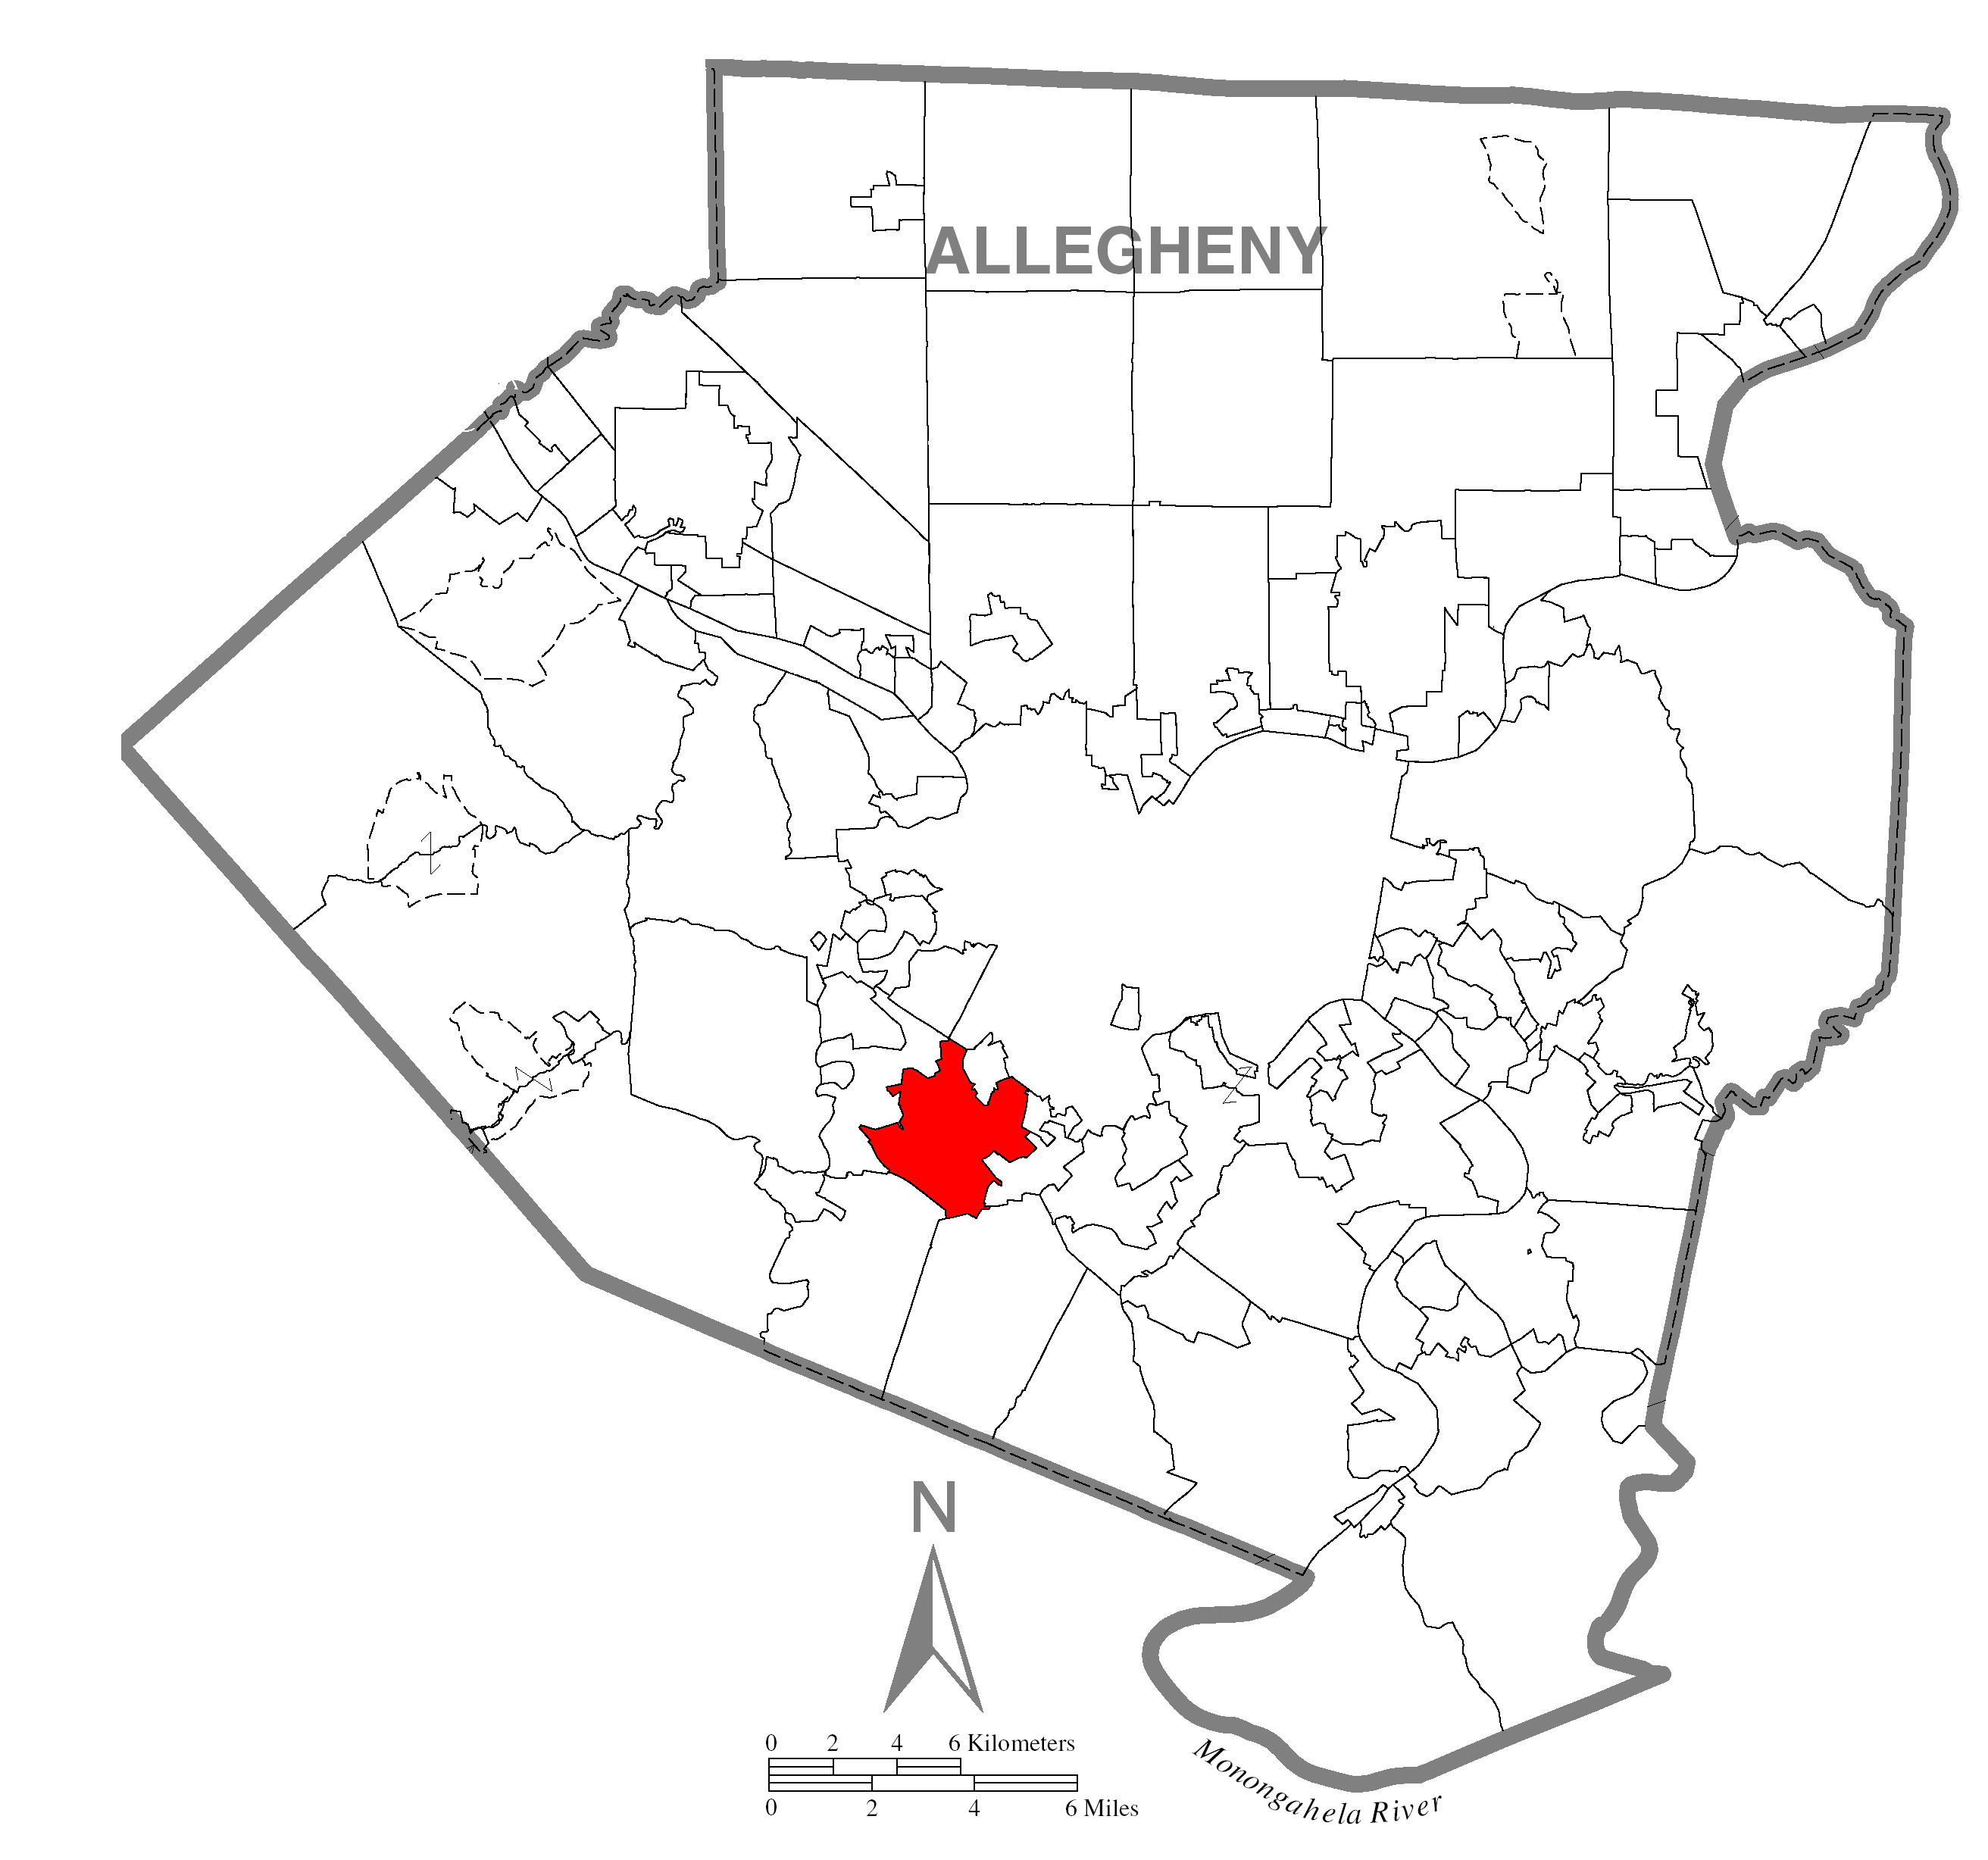 file map of mount lebanon township  allegheny county